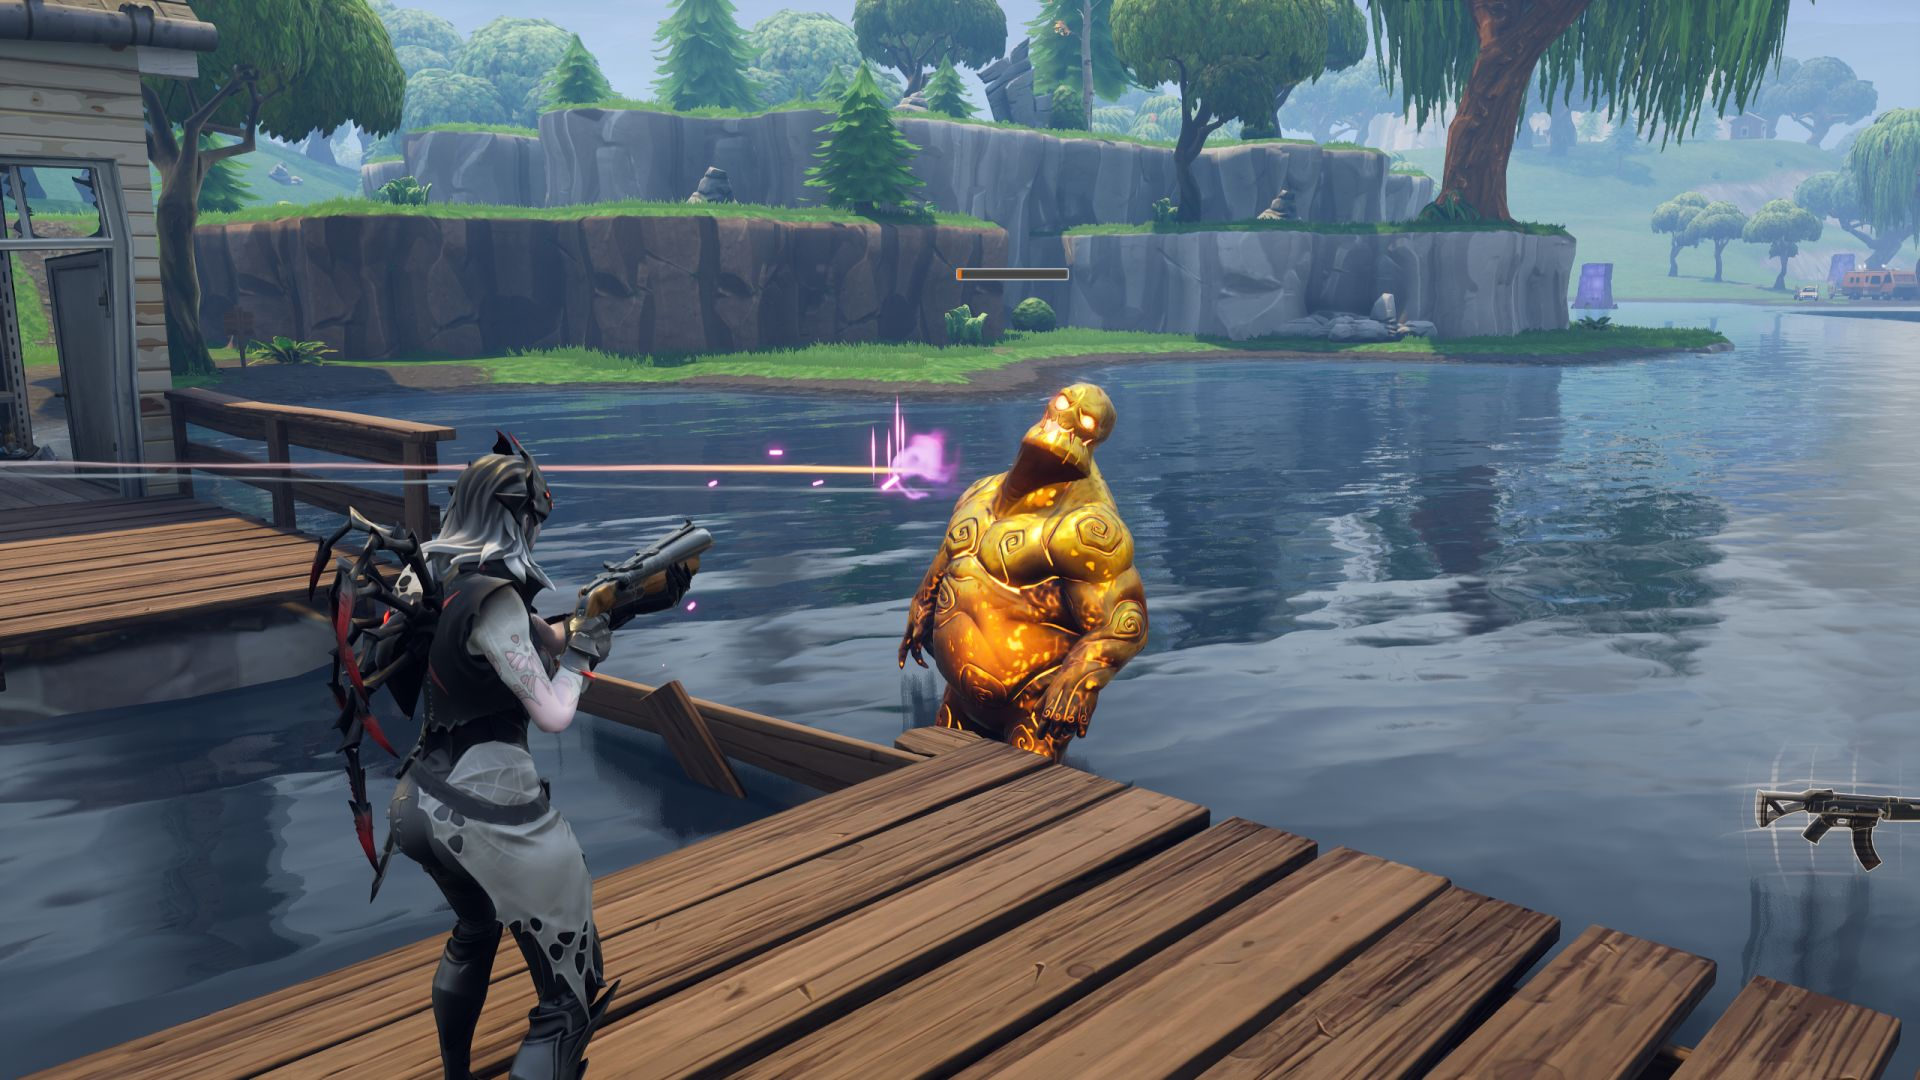 Fortnite Screenshot 2018.10.25 – 12.18.47.79